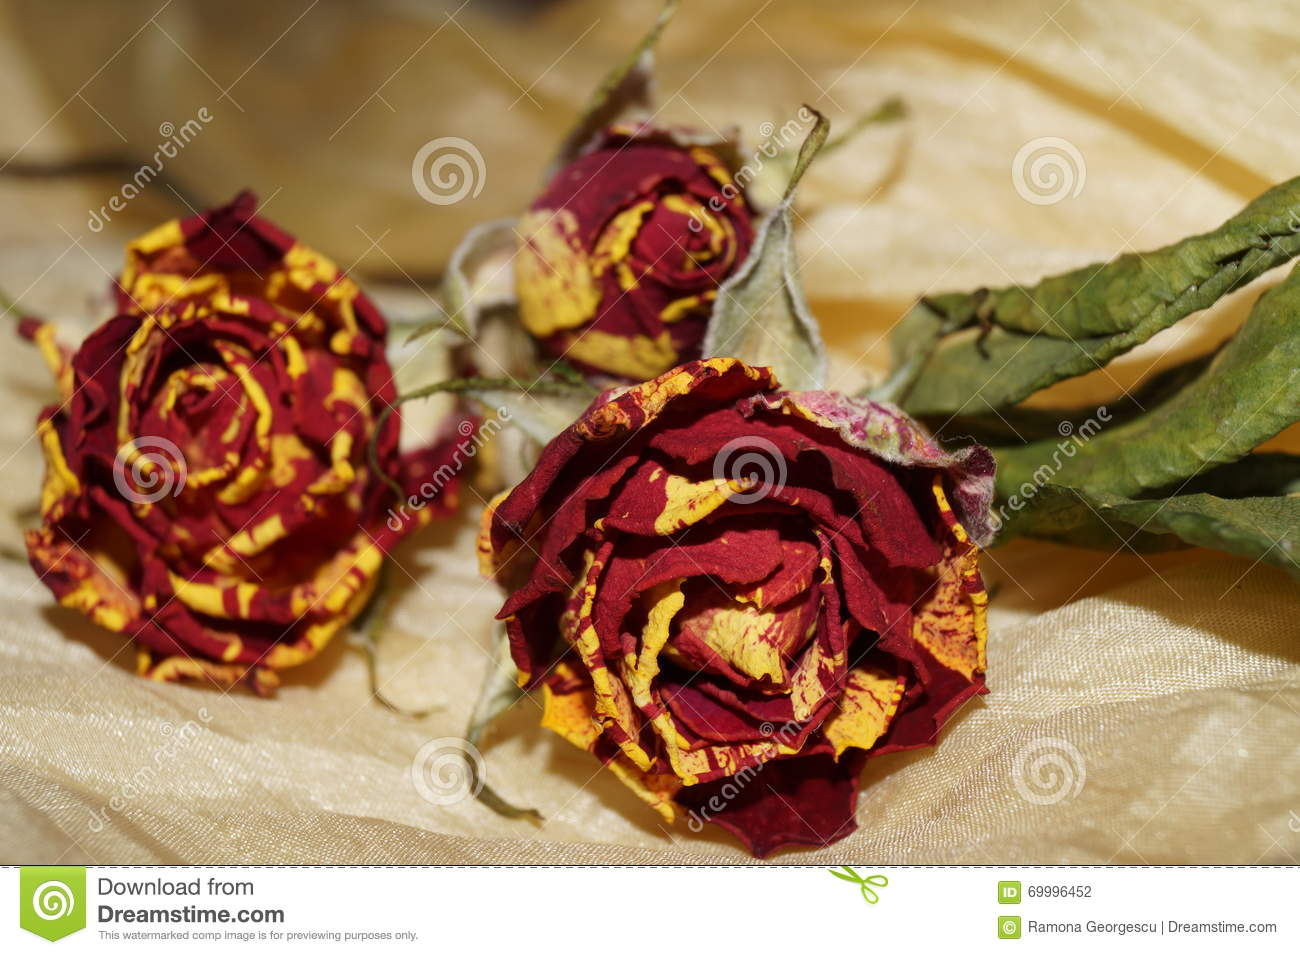 Wither roses on yellow silk stock photo image 69996452 for Natural rose colors